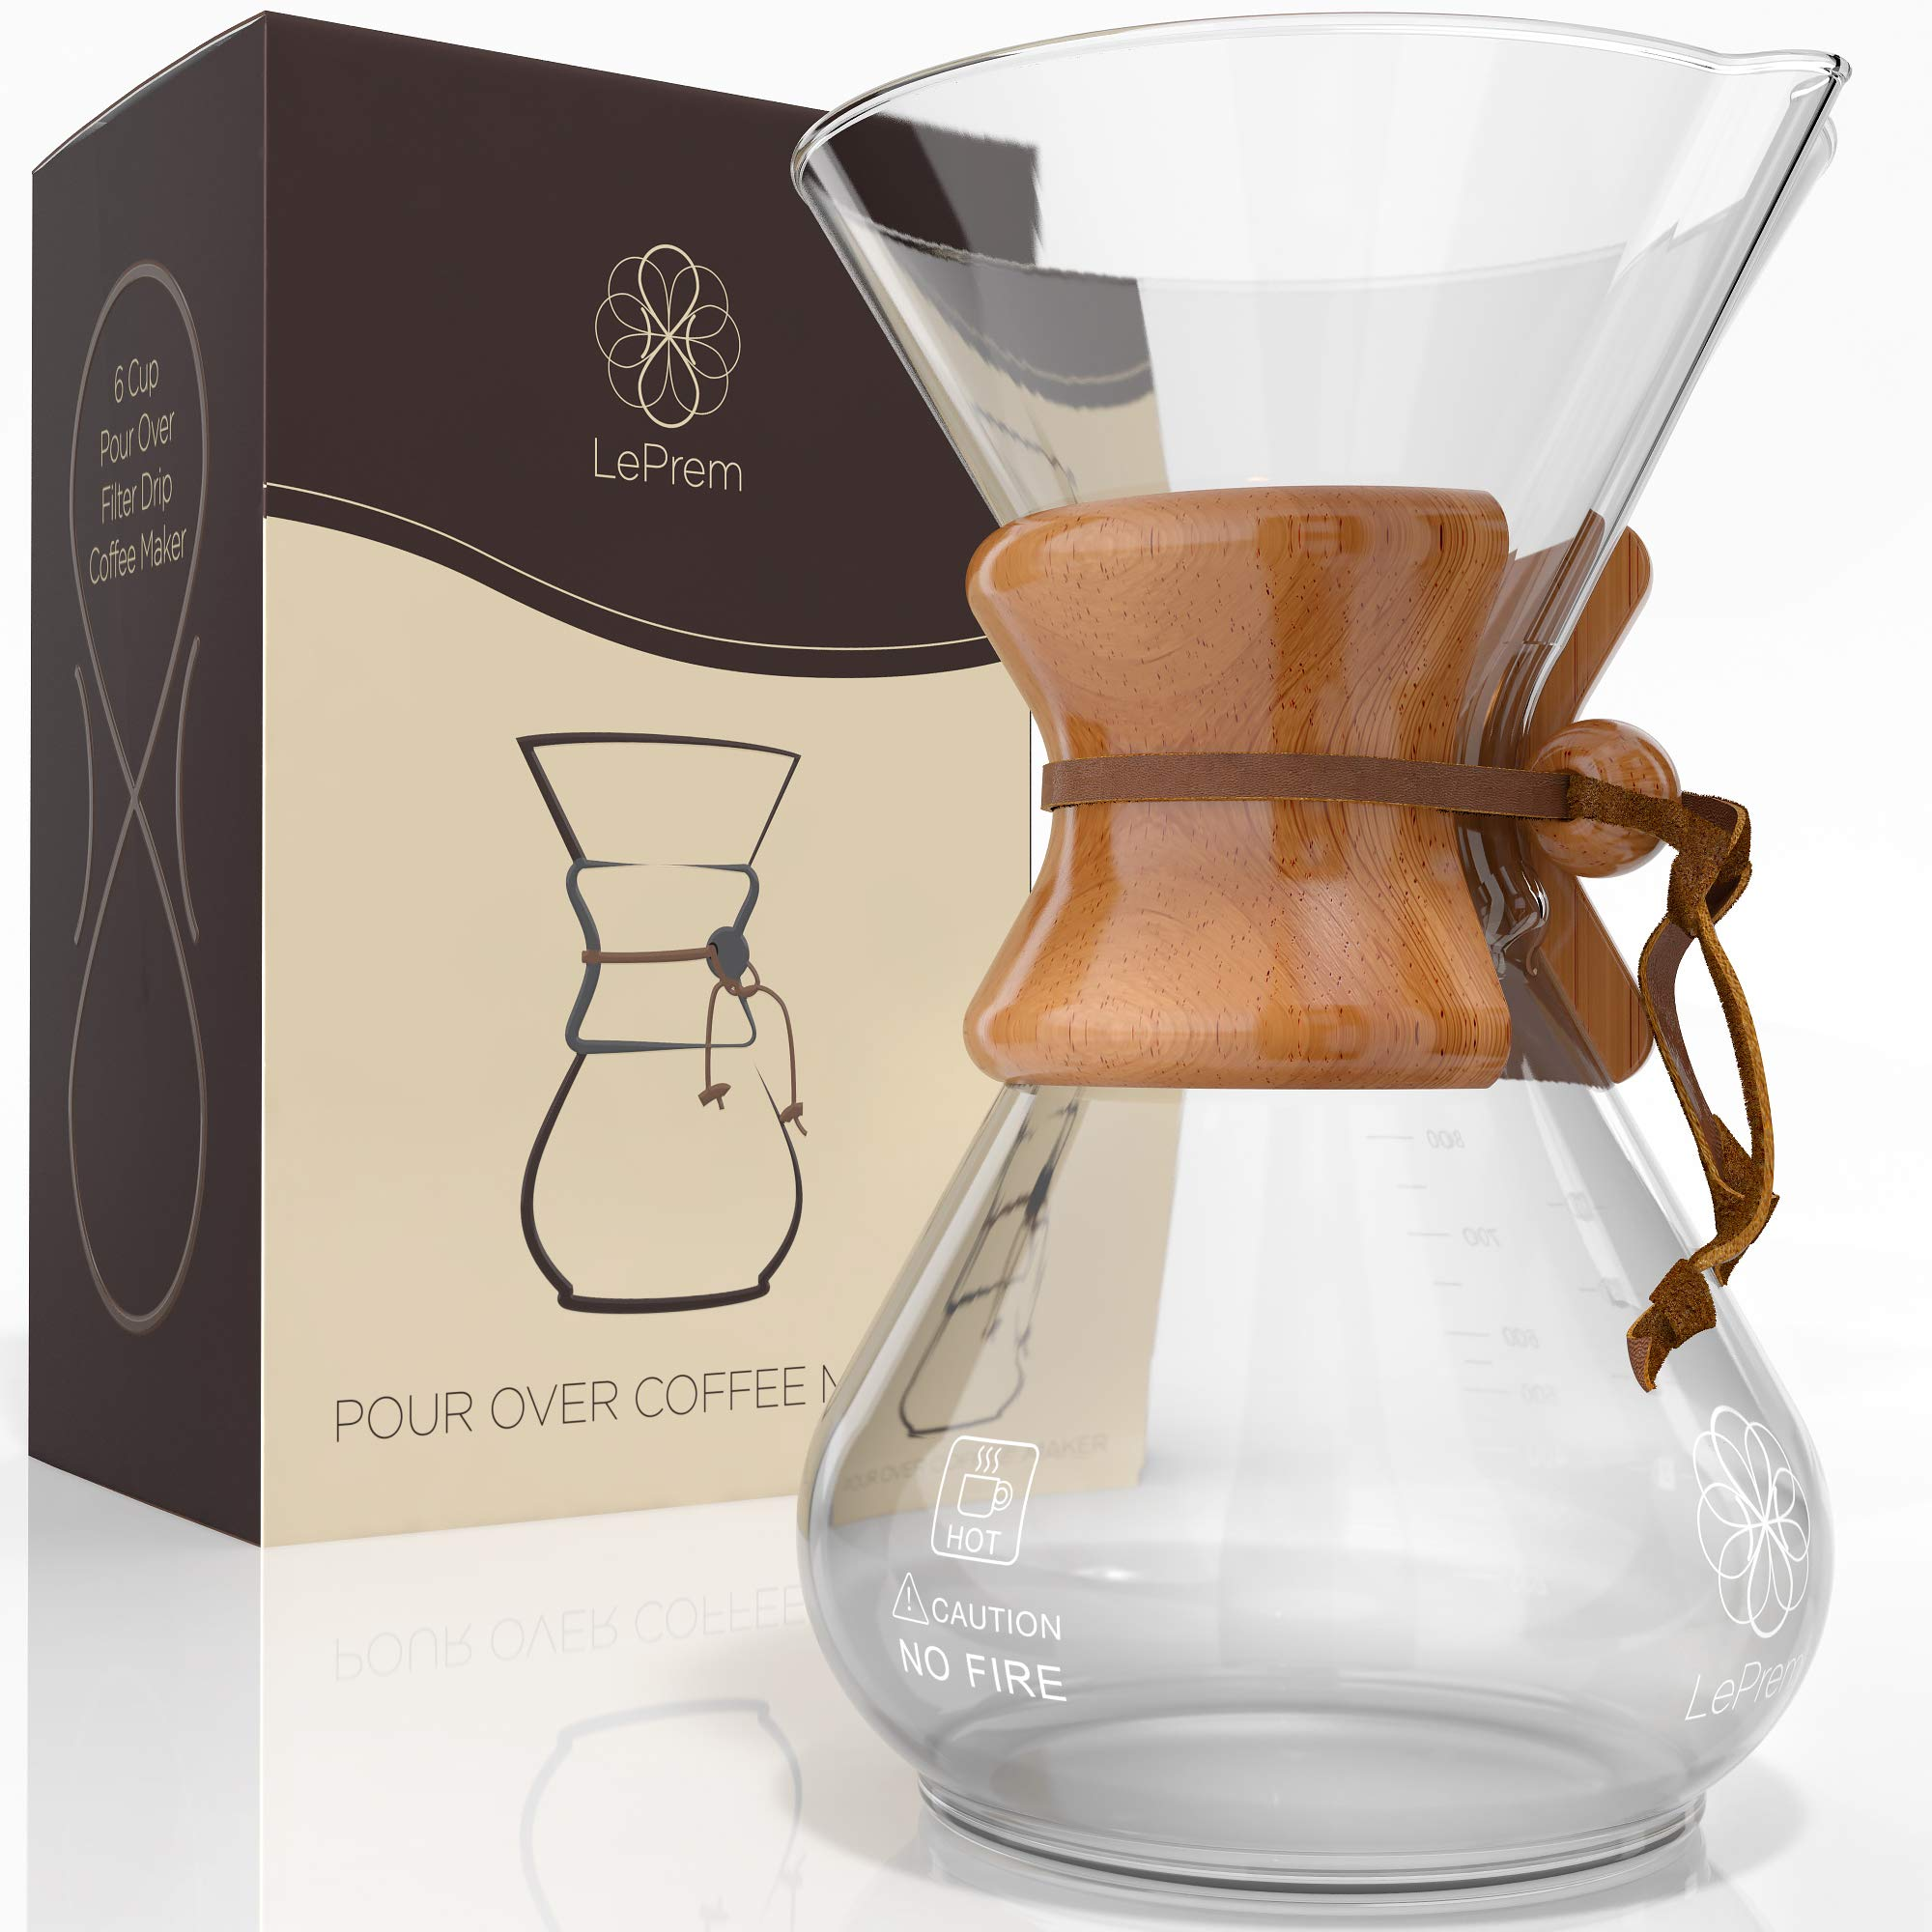 Pour Over Coffee Maker Hand Blown Glass - Classic 6 Cup Hand Drip Brewer - Strong Borosilicate Carafe, Easy Clean and Better Tasting Coffee by LePrem